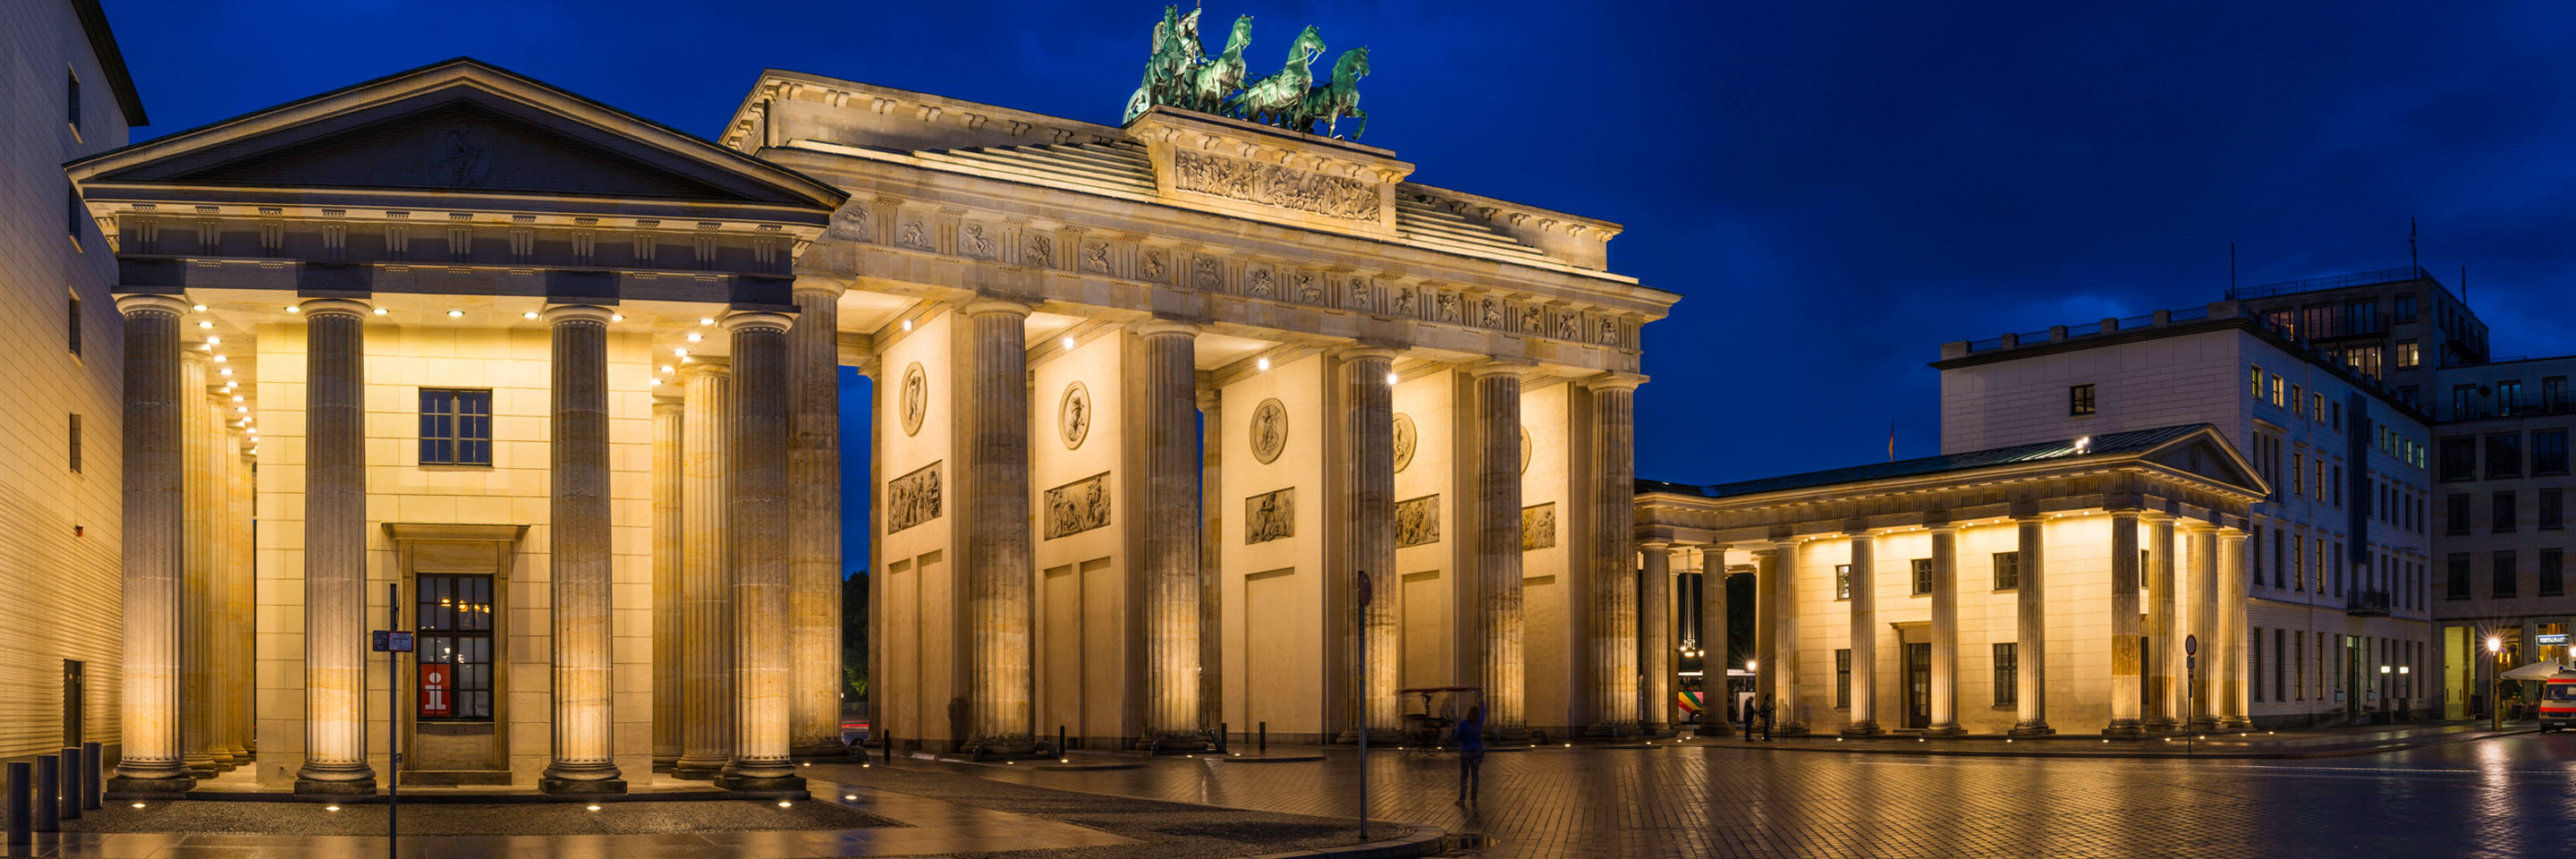 Berlin guided tours Globus